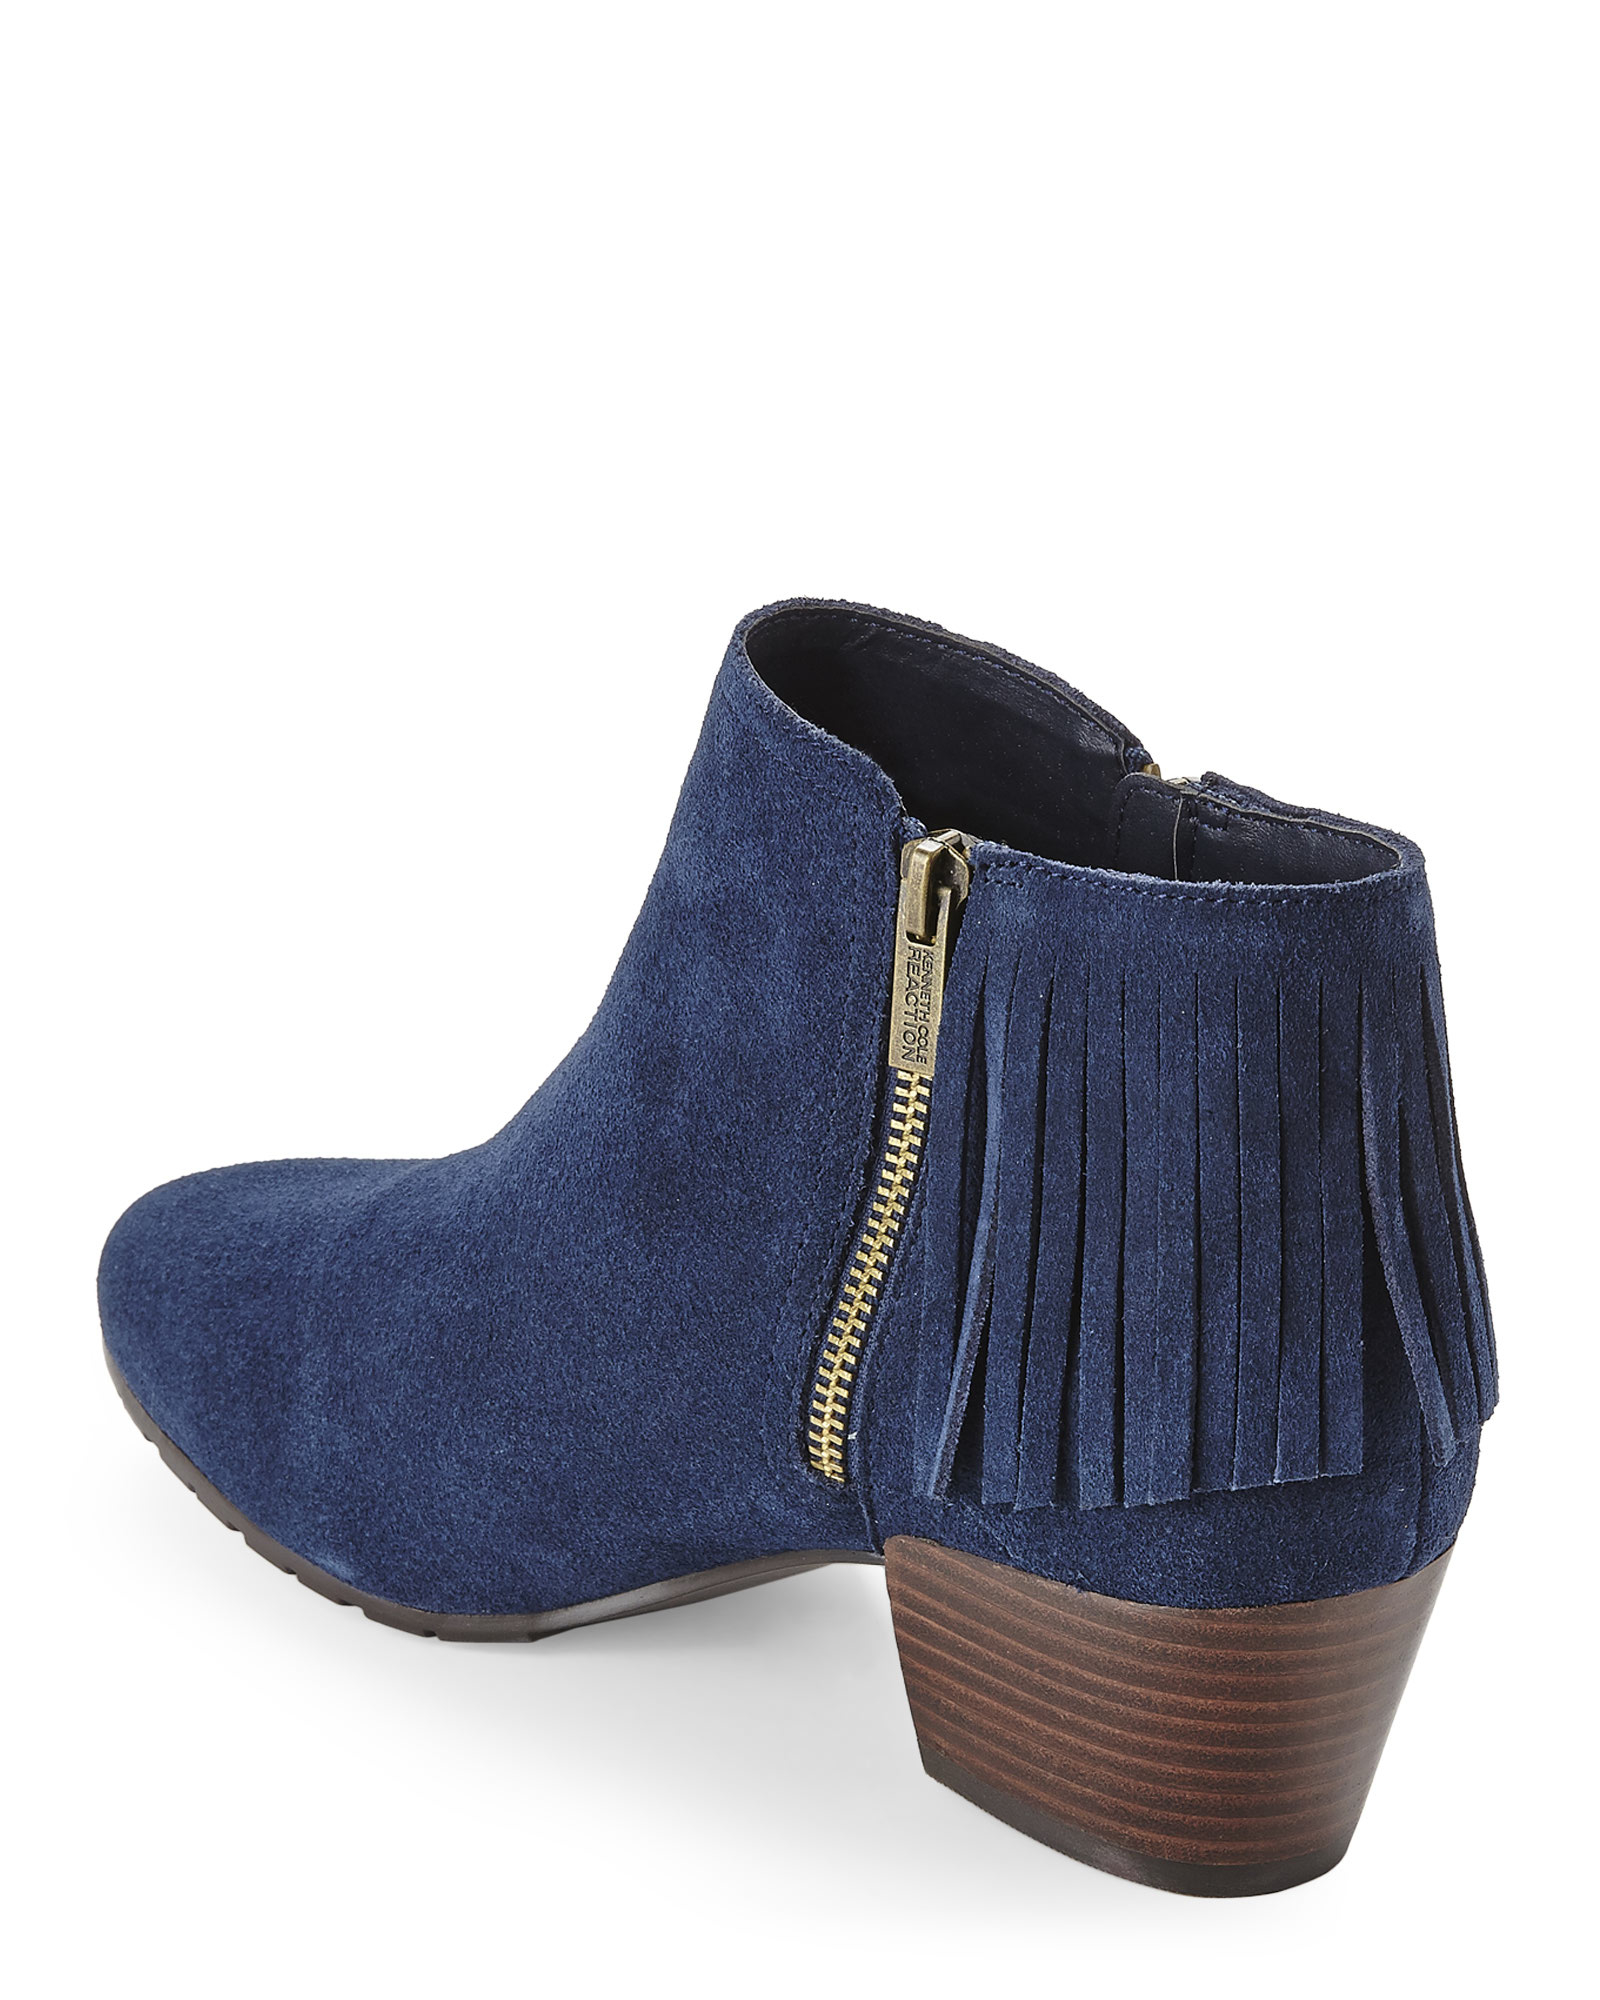 Kenneth Cole Reaction Blue Shoes